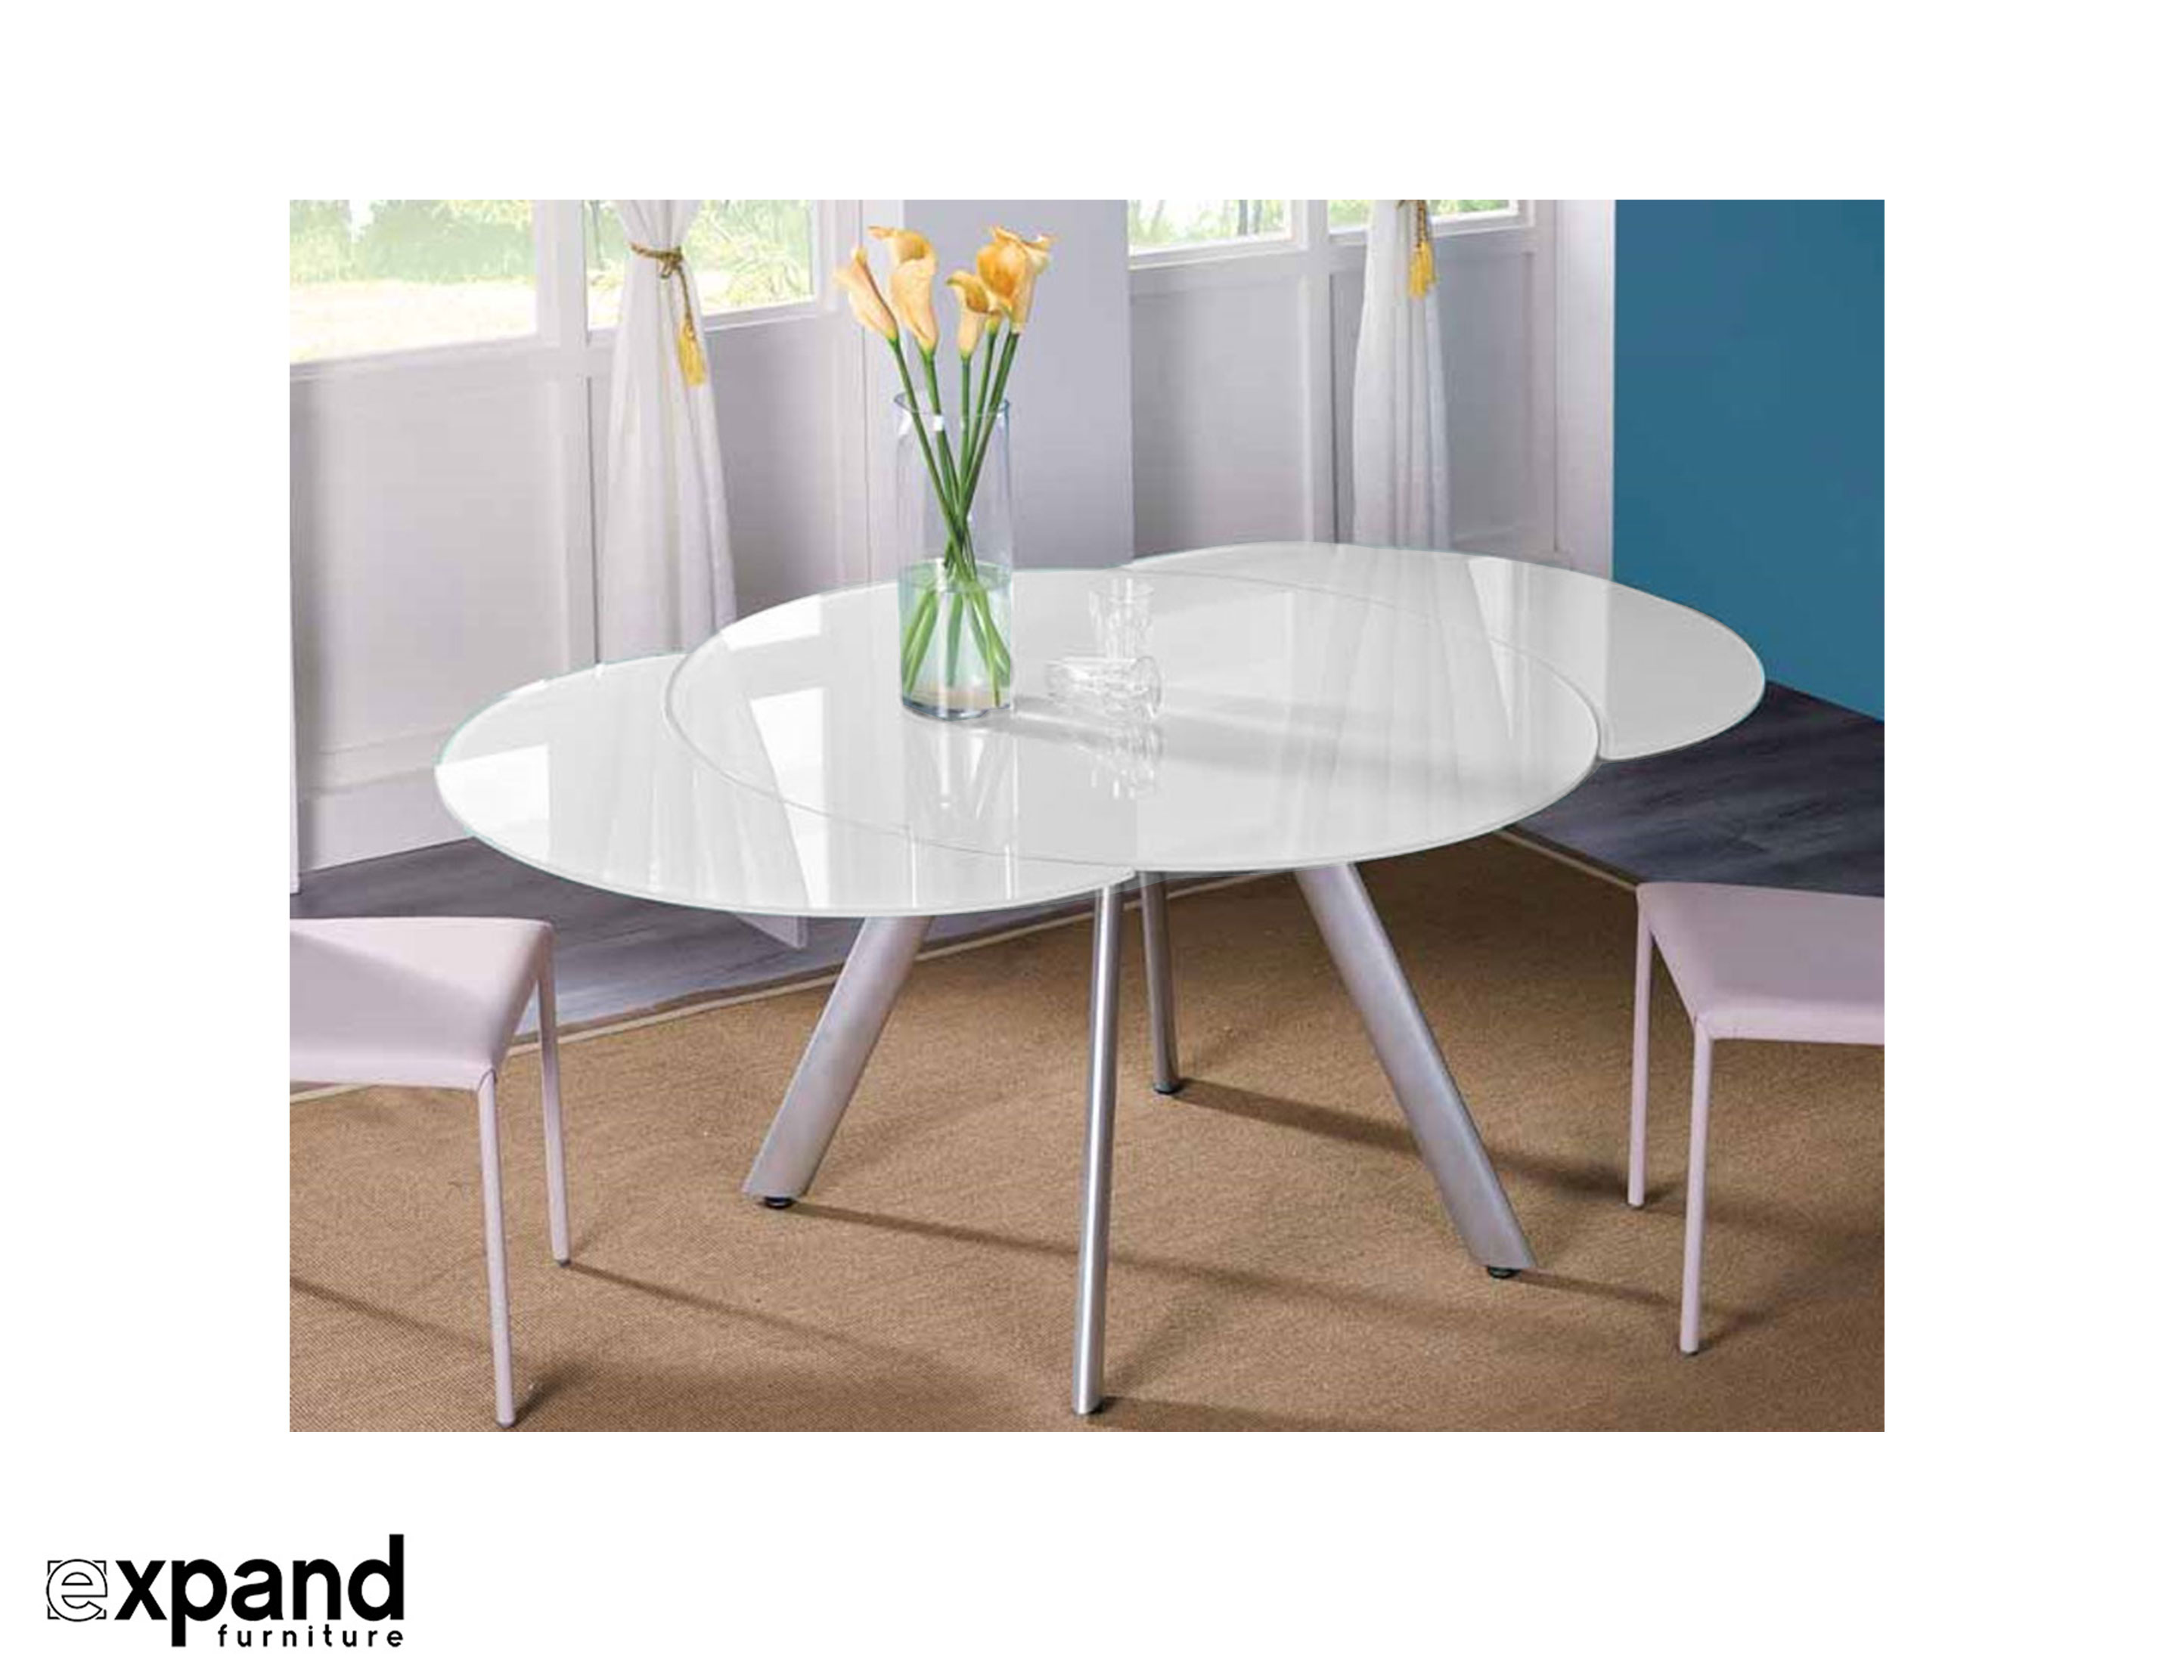 The Butterfly Expandable Round Glass Dining Table Expand  : butterfly round glass extending table from expandfurniture.com size 2888 x 2222 jpeg 330kB